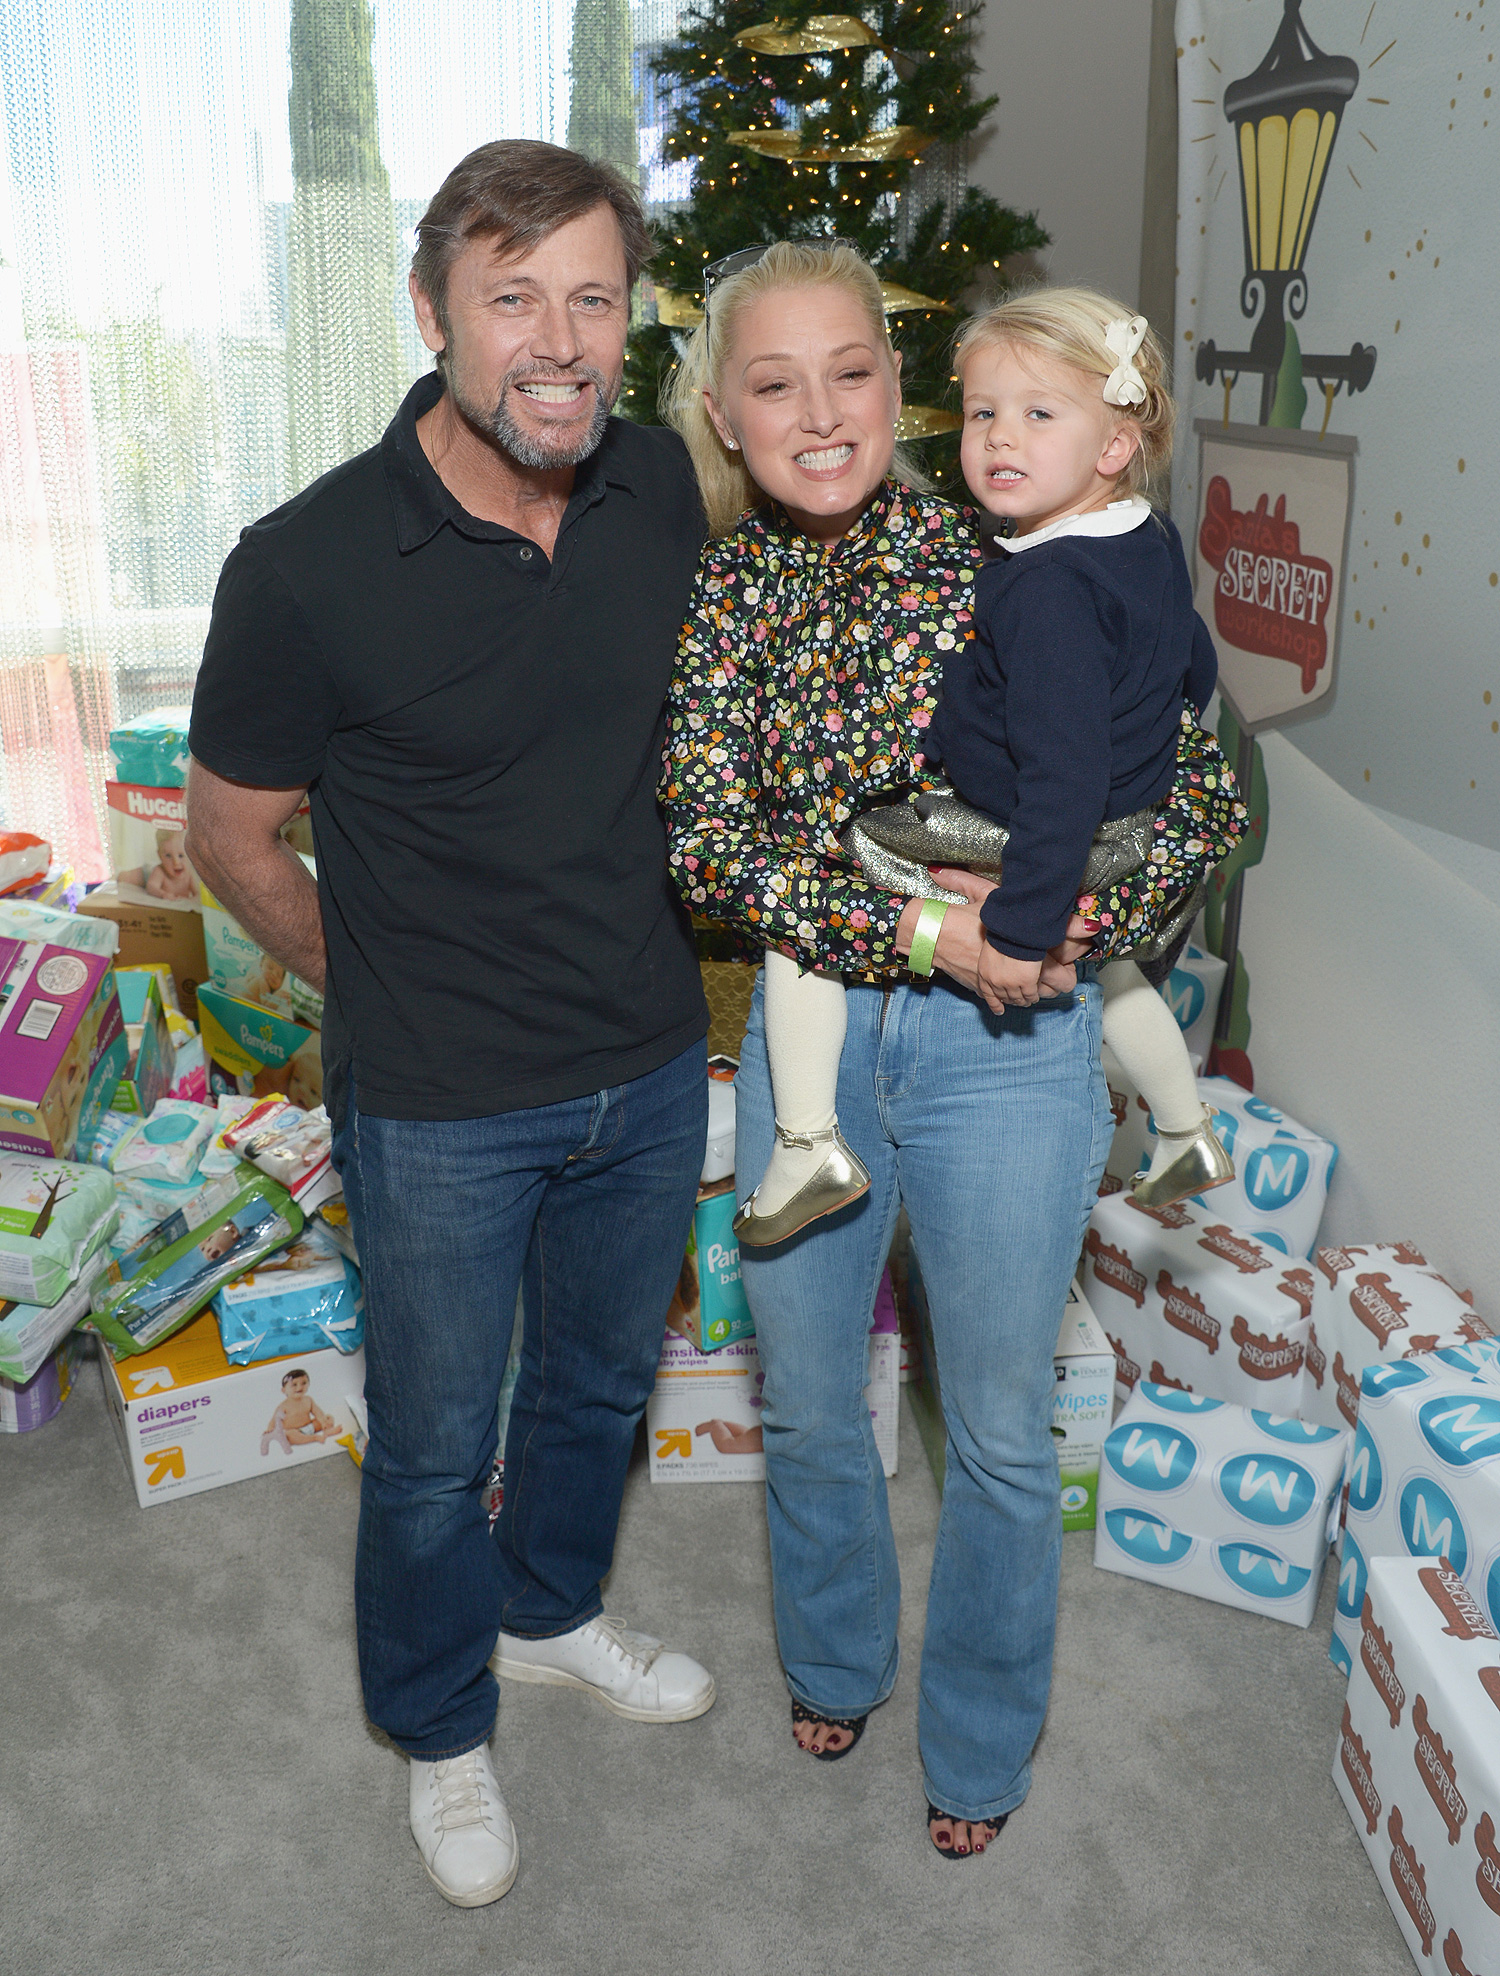 WEST HOLLYWOOD, CA - DECEMBER 03: (L-R) Actor Grant Show, actress Katherine LaNasa and daughter Eloise McCue Show attend 6th Annual Santa's Secret Workshop benefitting L.A. Family Housing at Andaz on December 3, 2016 in West Hollywood, California. (Photo by Matt Winkelmeyer/Getty Images for Santa's Secret Workshop 2016)